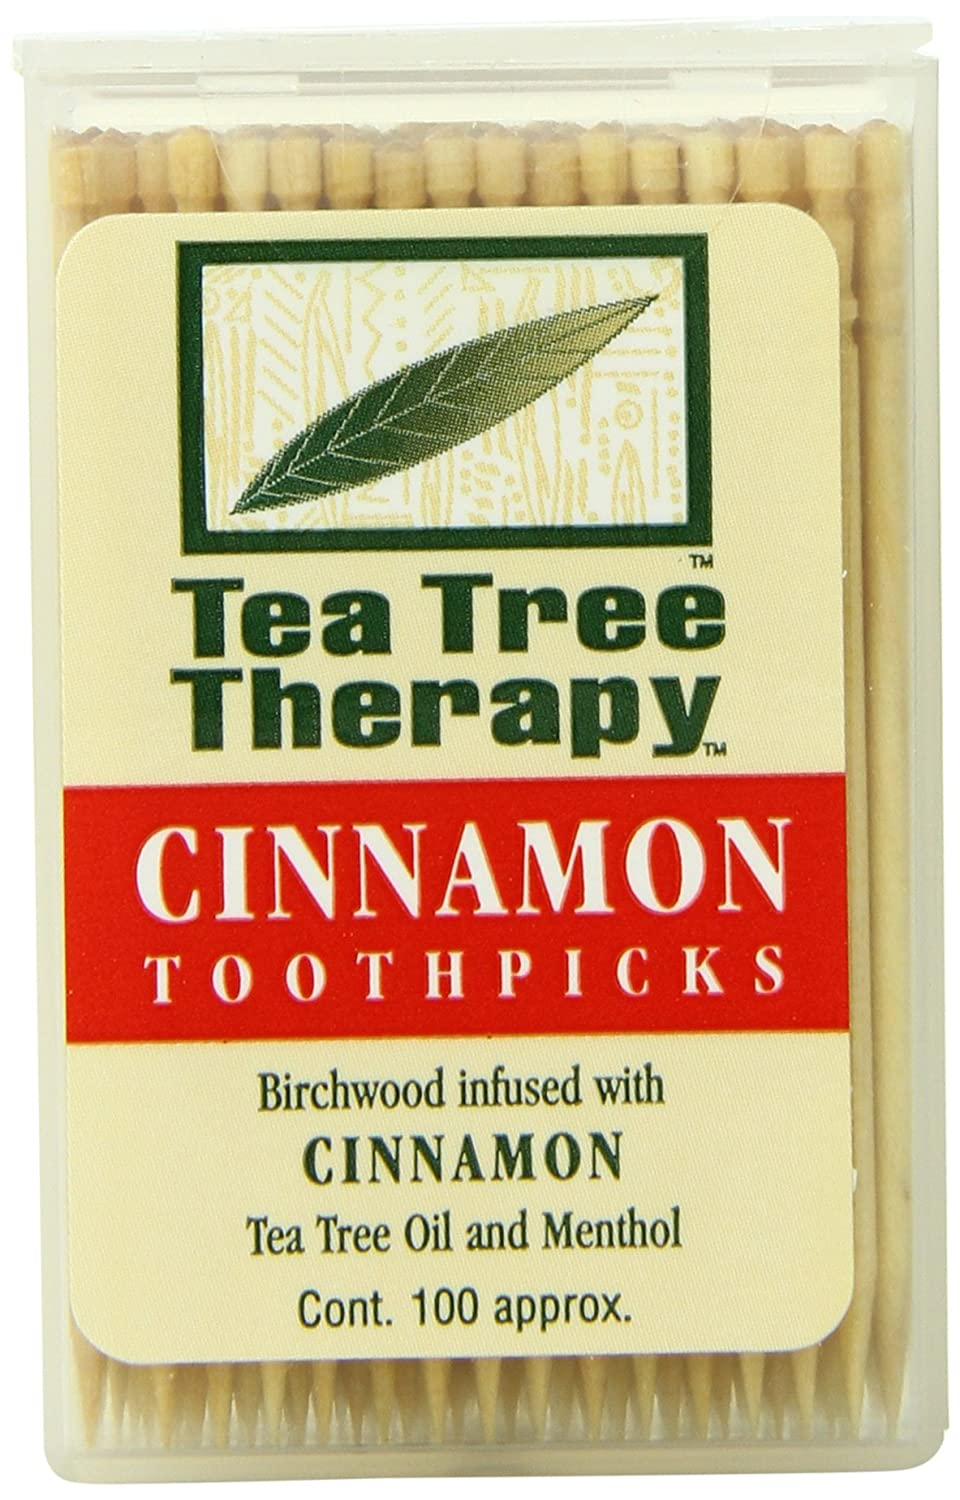 Tea Tree Therapy Toothpicks Cinnamon Tea Tree Therapy 100 ct Toothpick 0637792505002